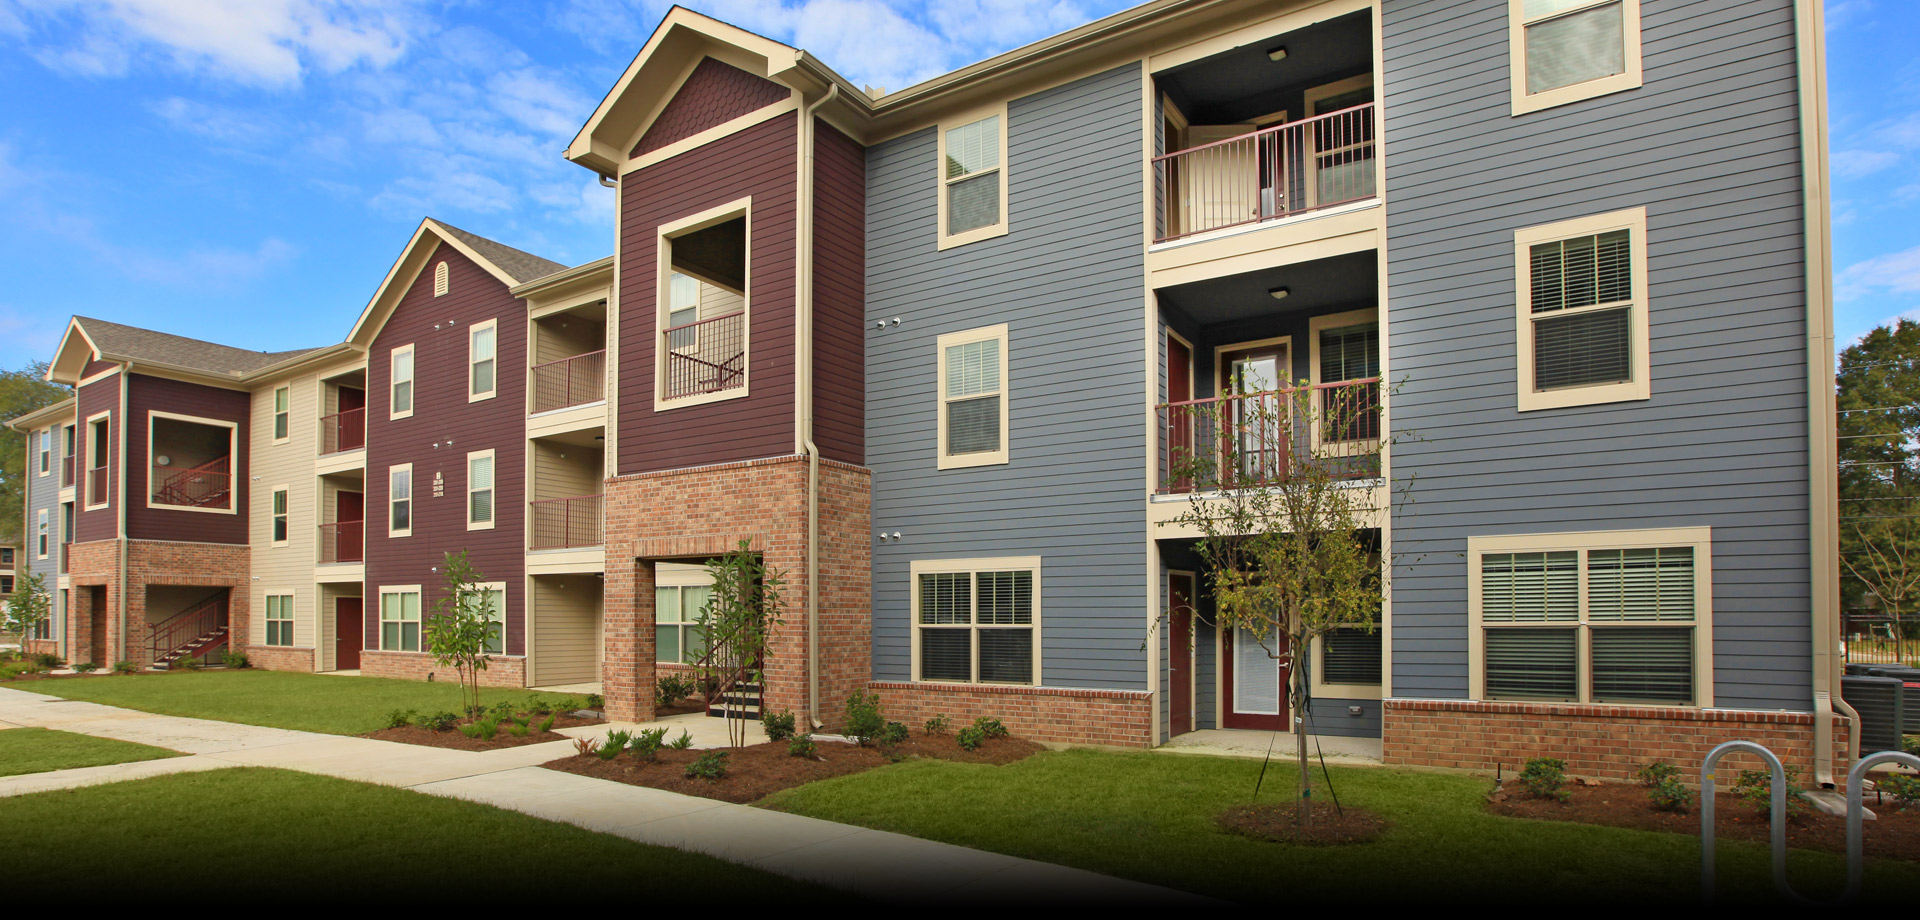 Appartments In Baton 28 Images Baton Rouge La Apartments For Rent Realtor Com 174 The